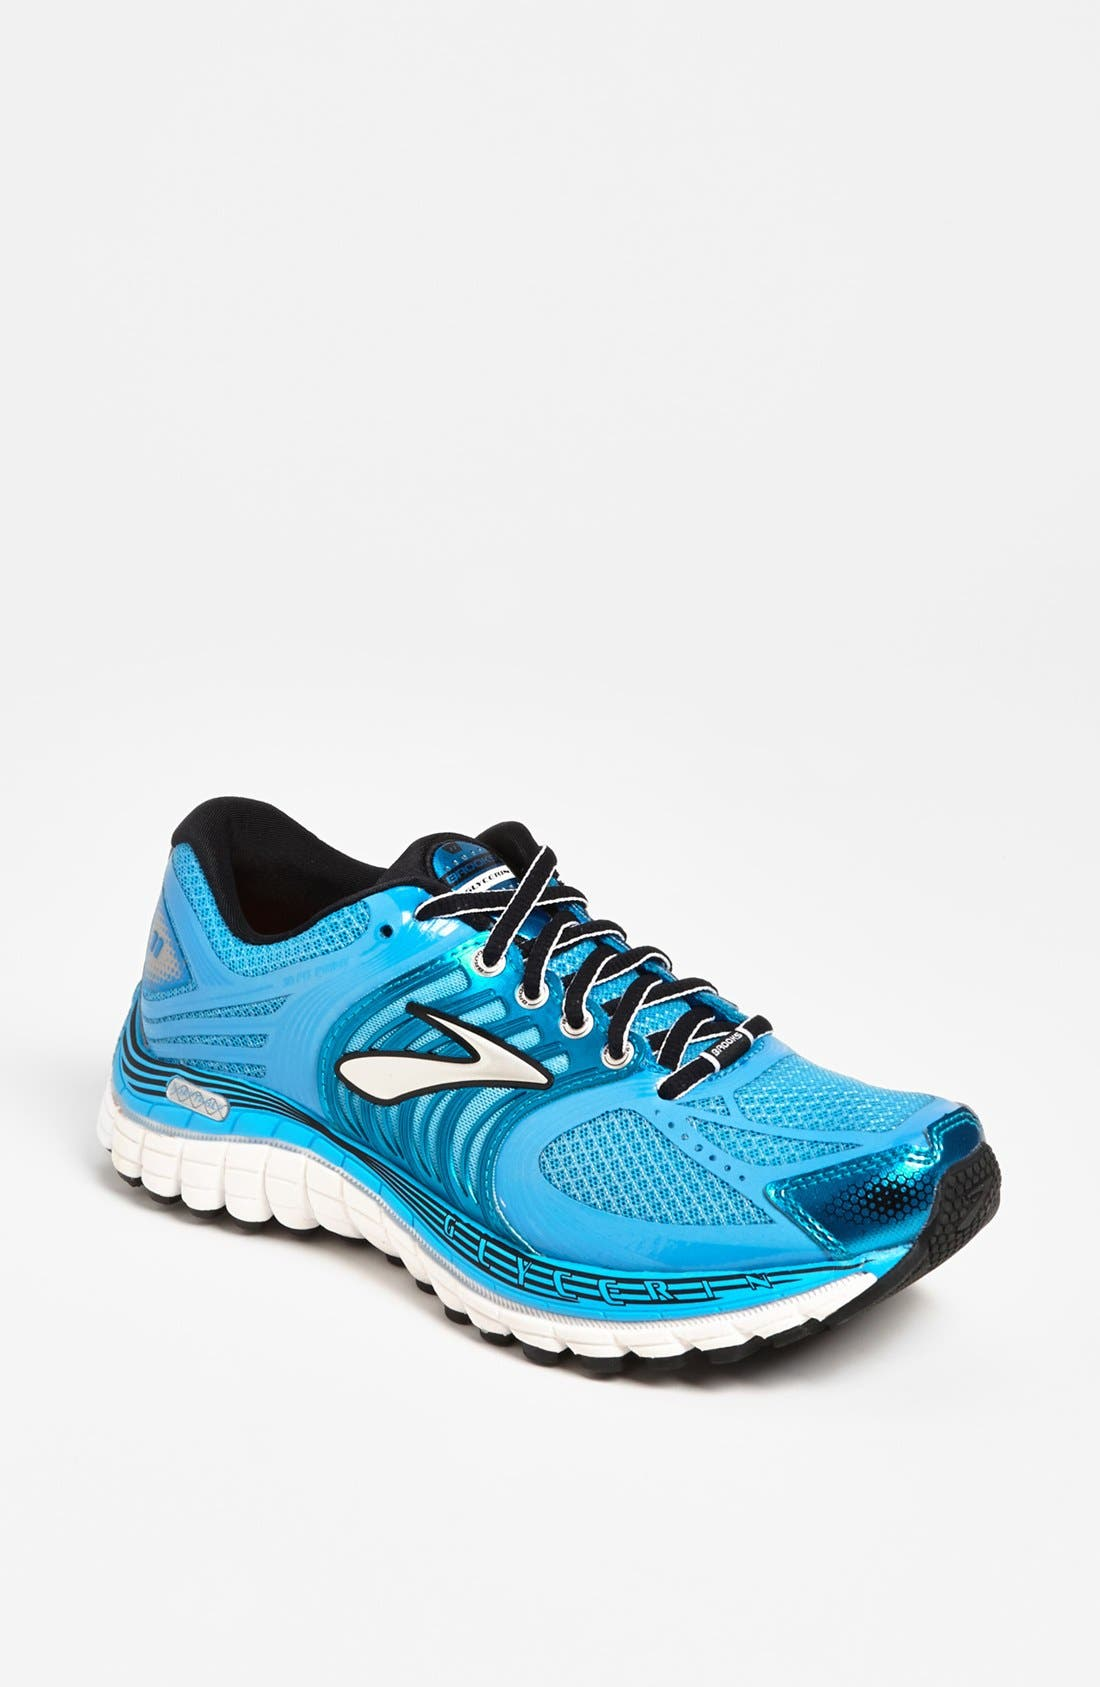 Main Image - Brooks 'Glycerin 11' Running Shoe (Women) (Regular Retail Price: $149.95)